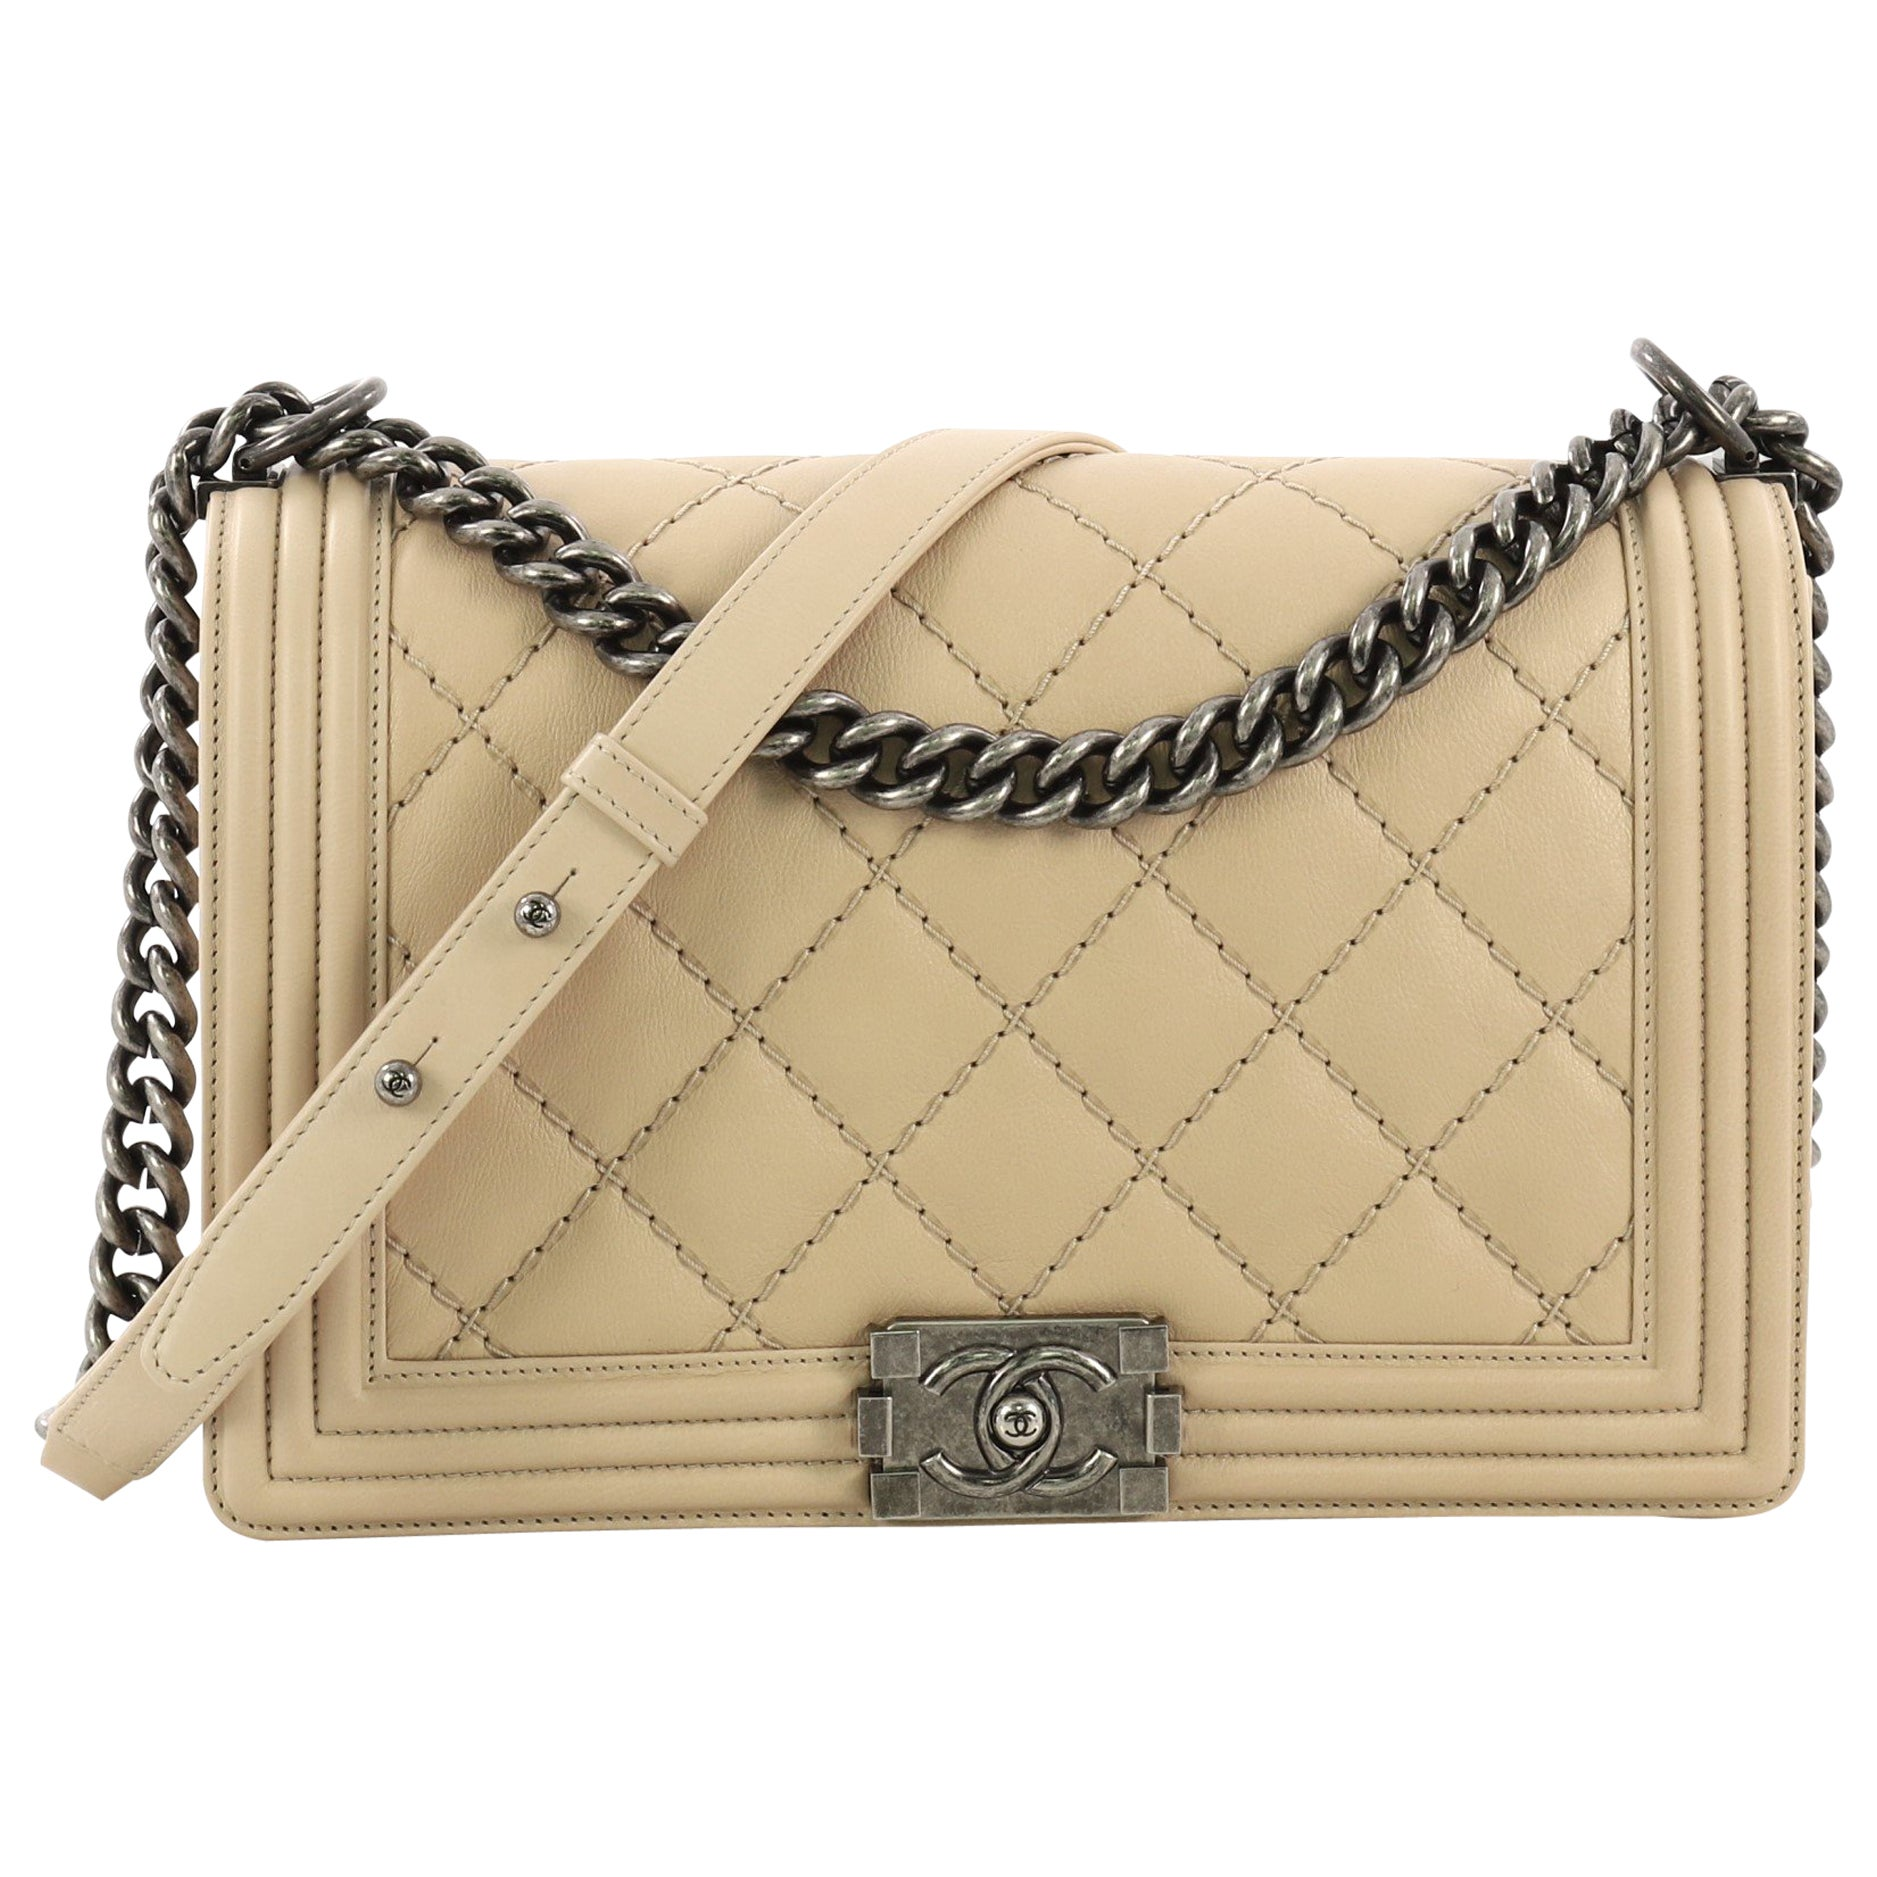 670d63c3162b Chanel Double Stitch Boy Flap Bag Quilted Calfskin Old Medium at 1stdibs